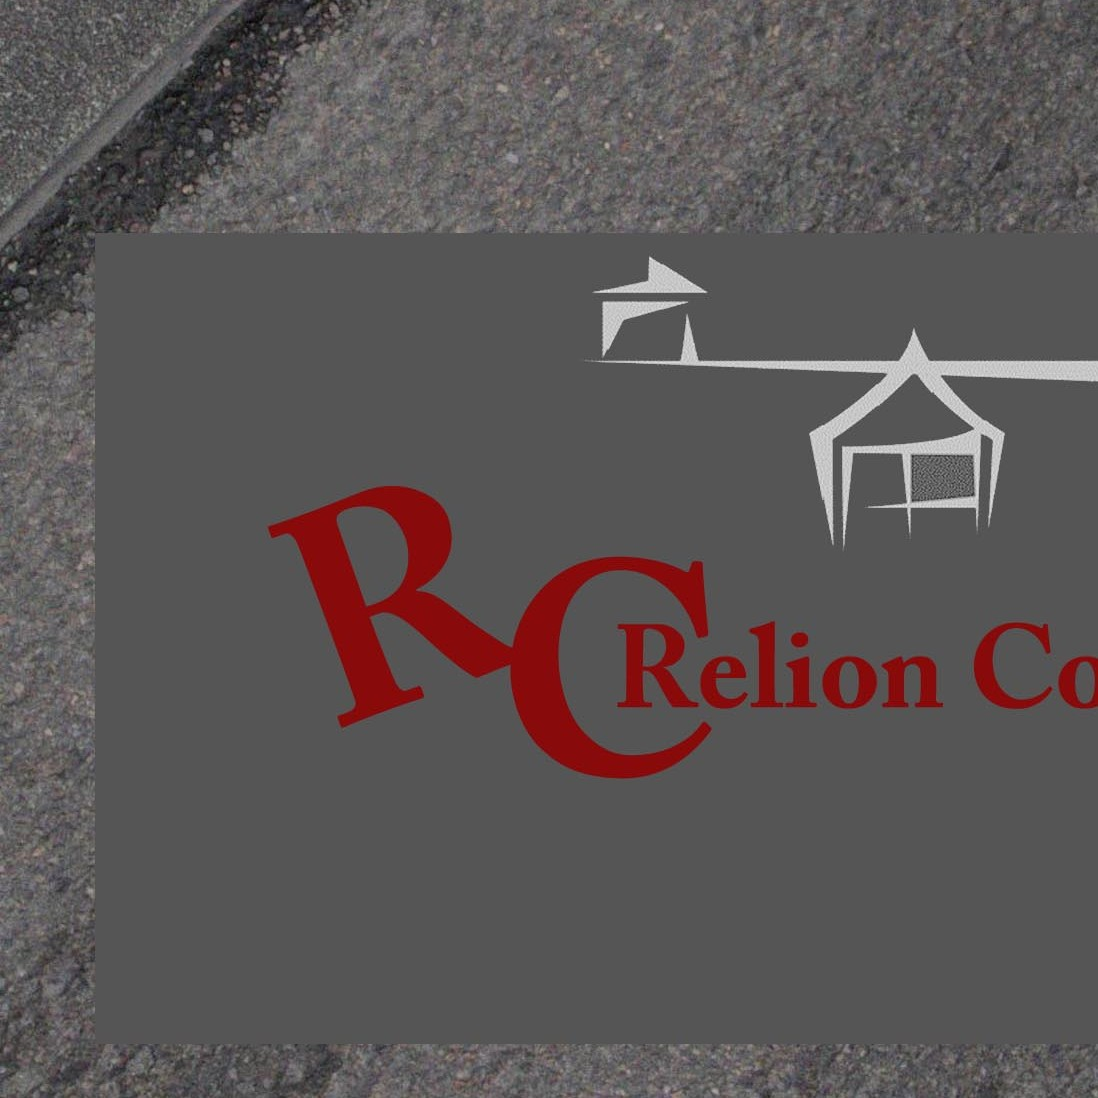 relion conception